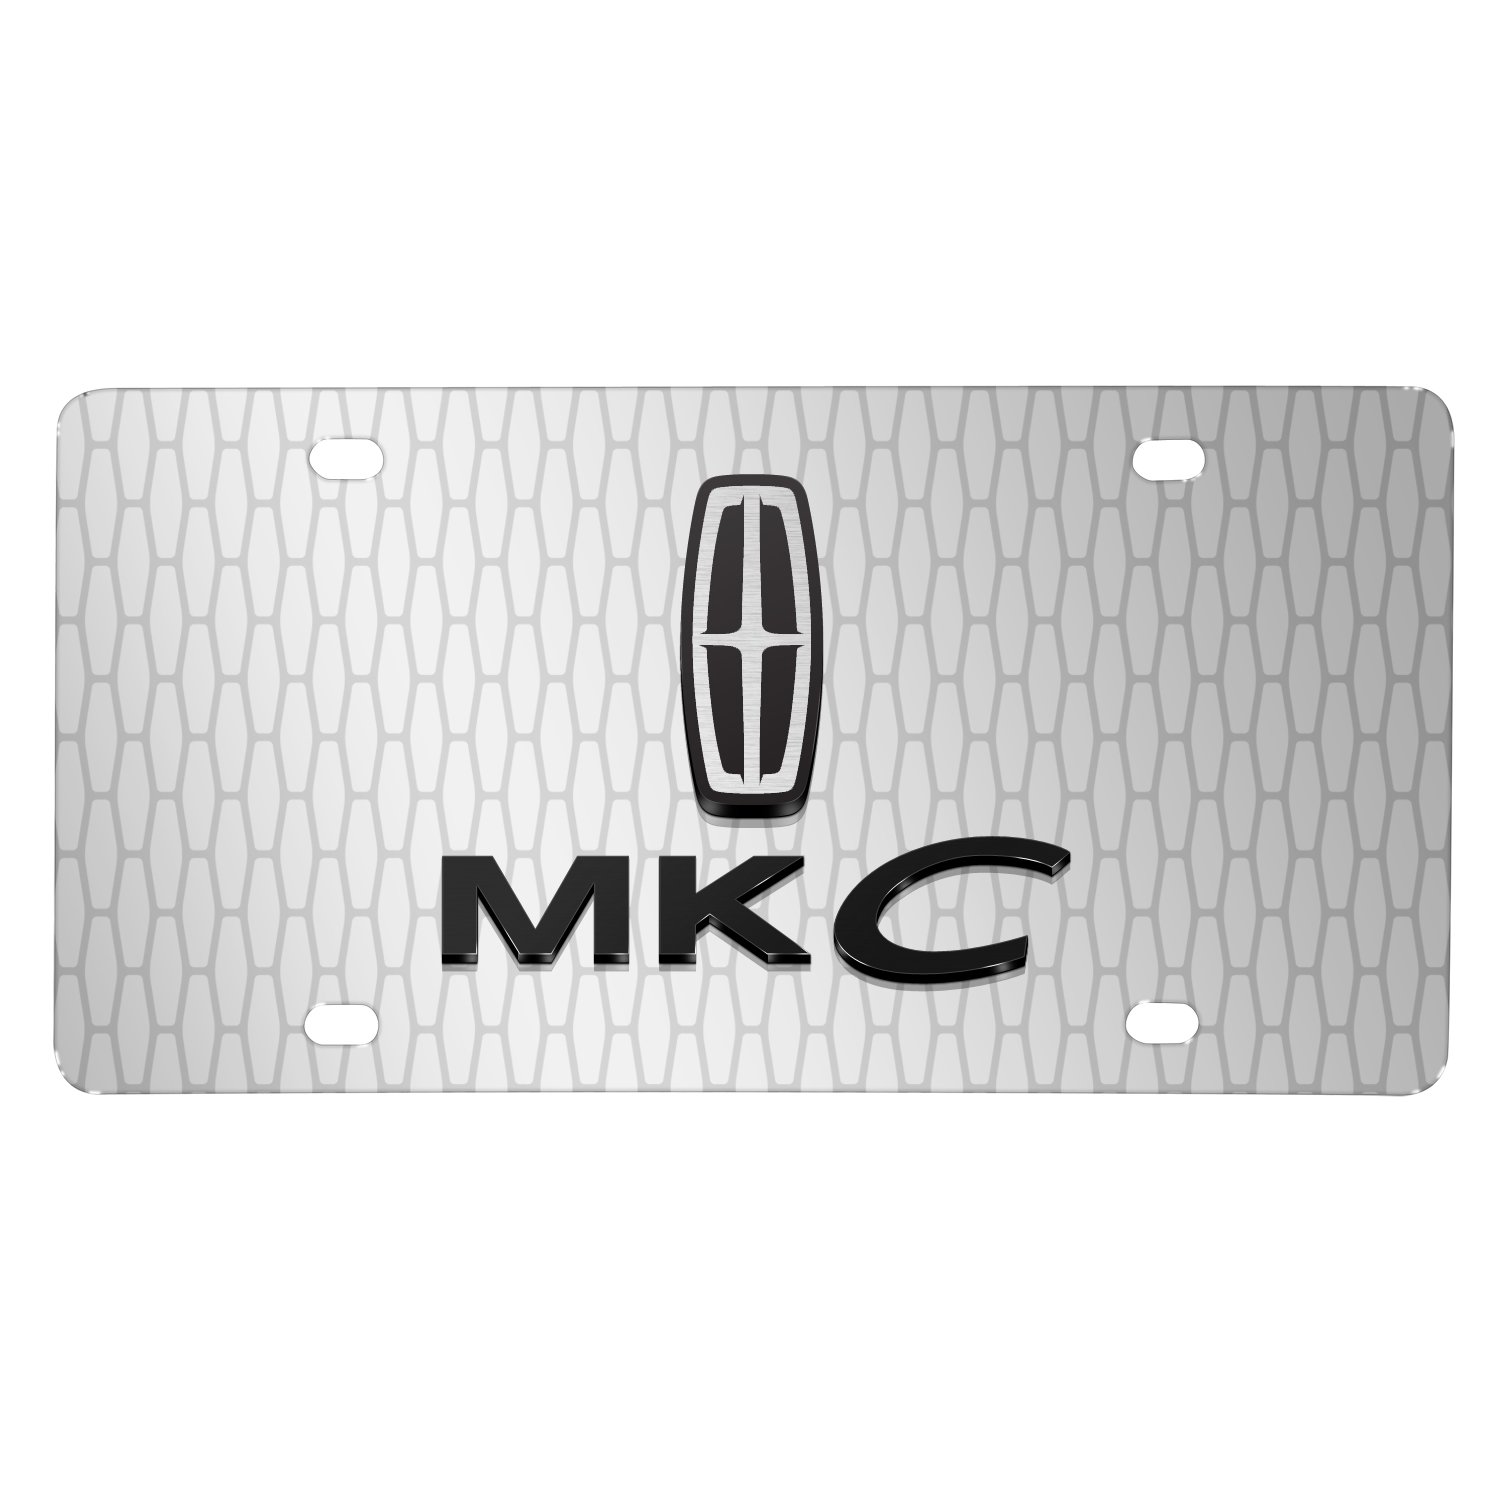 """Lincoln MKC 3D Logo on Front Grill pattern 12""""x6"""" Brushed Aluminum License Plate"""